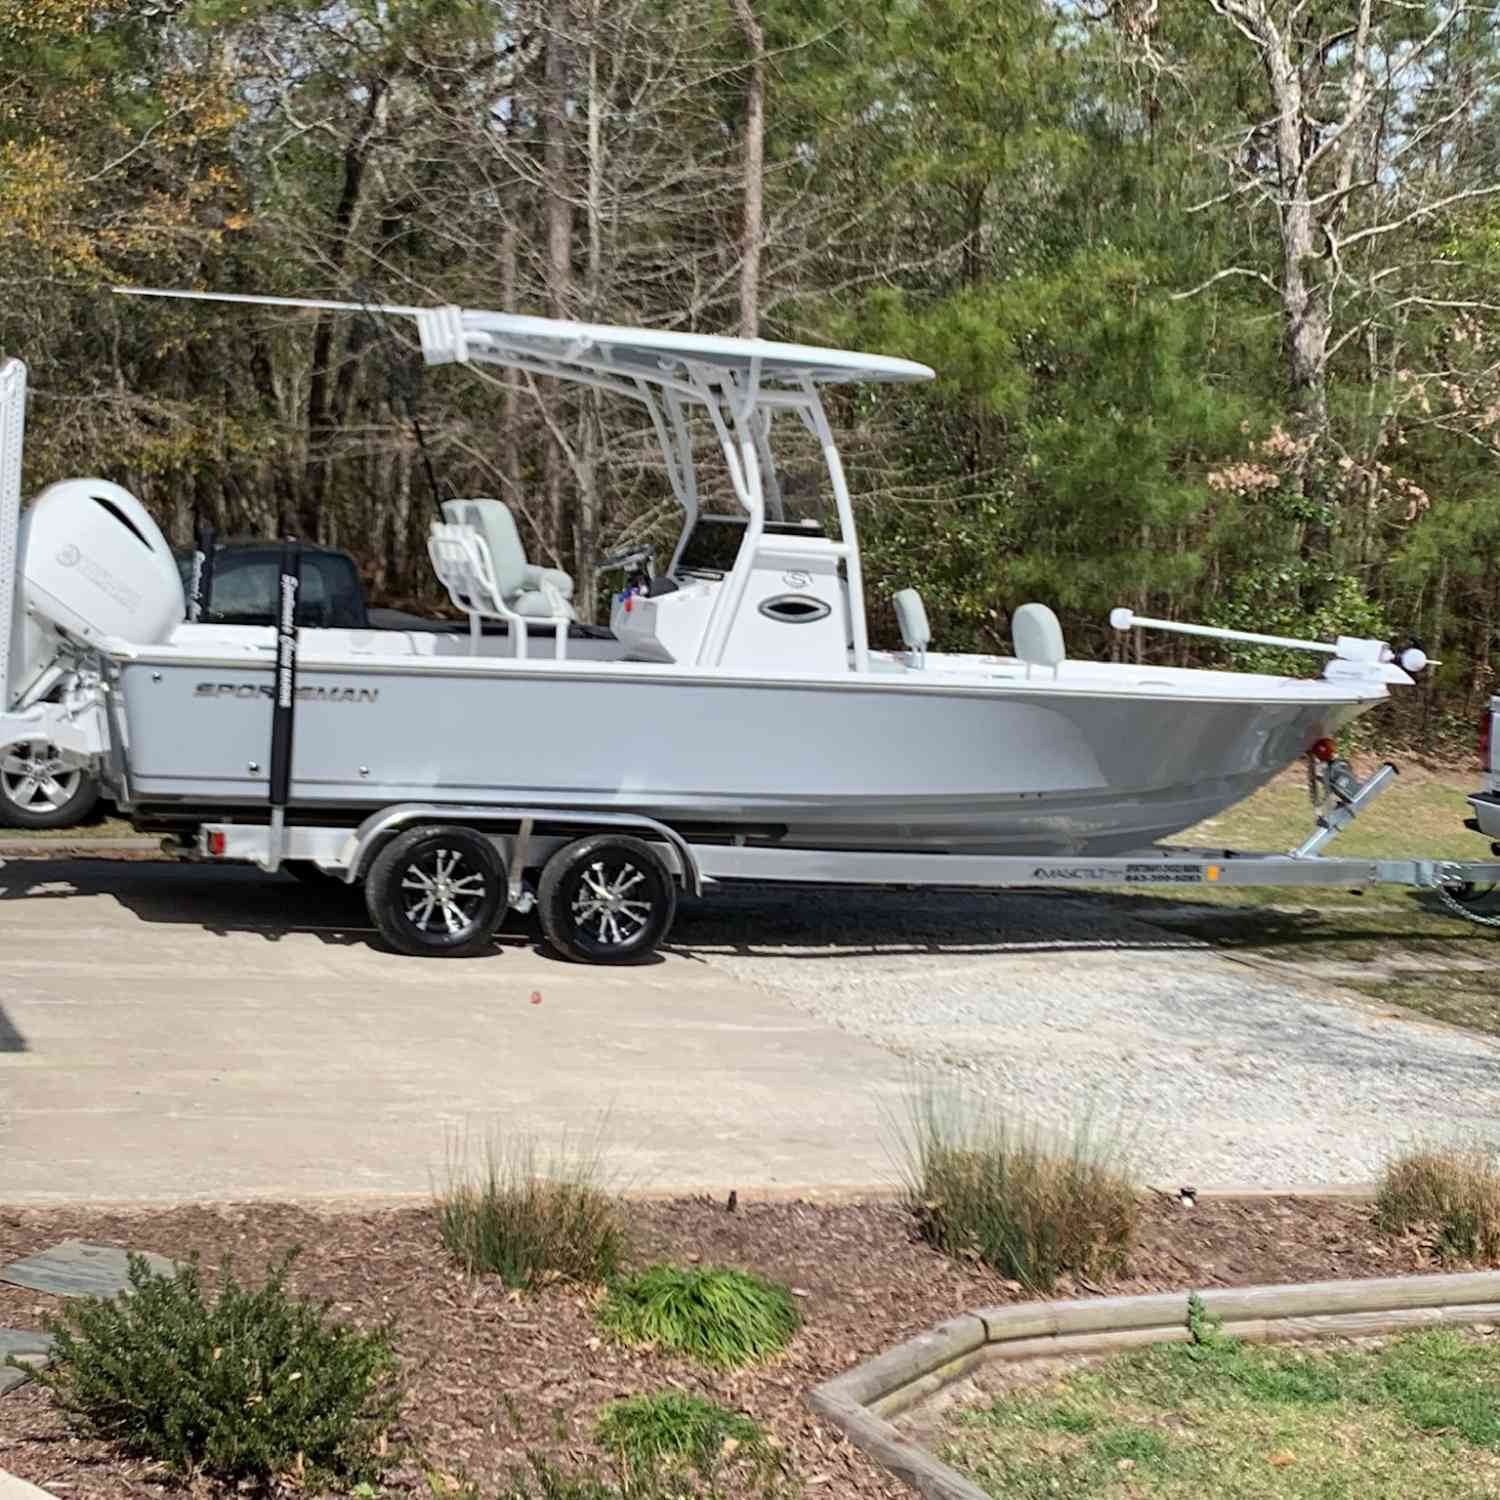 Title: Brand new - On board their Sportsman Masters 247 Bay Boat - Location: Ocean isle beach nc. Participating in the Photo Contest #SportsmanApril2019